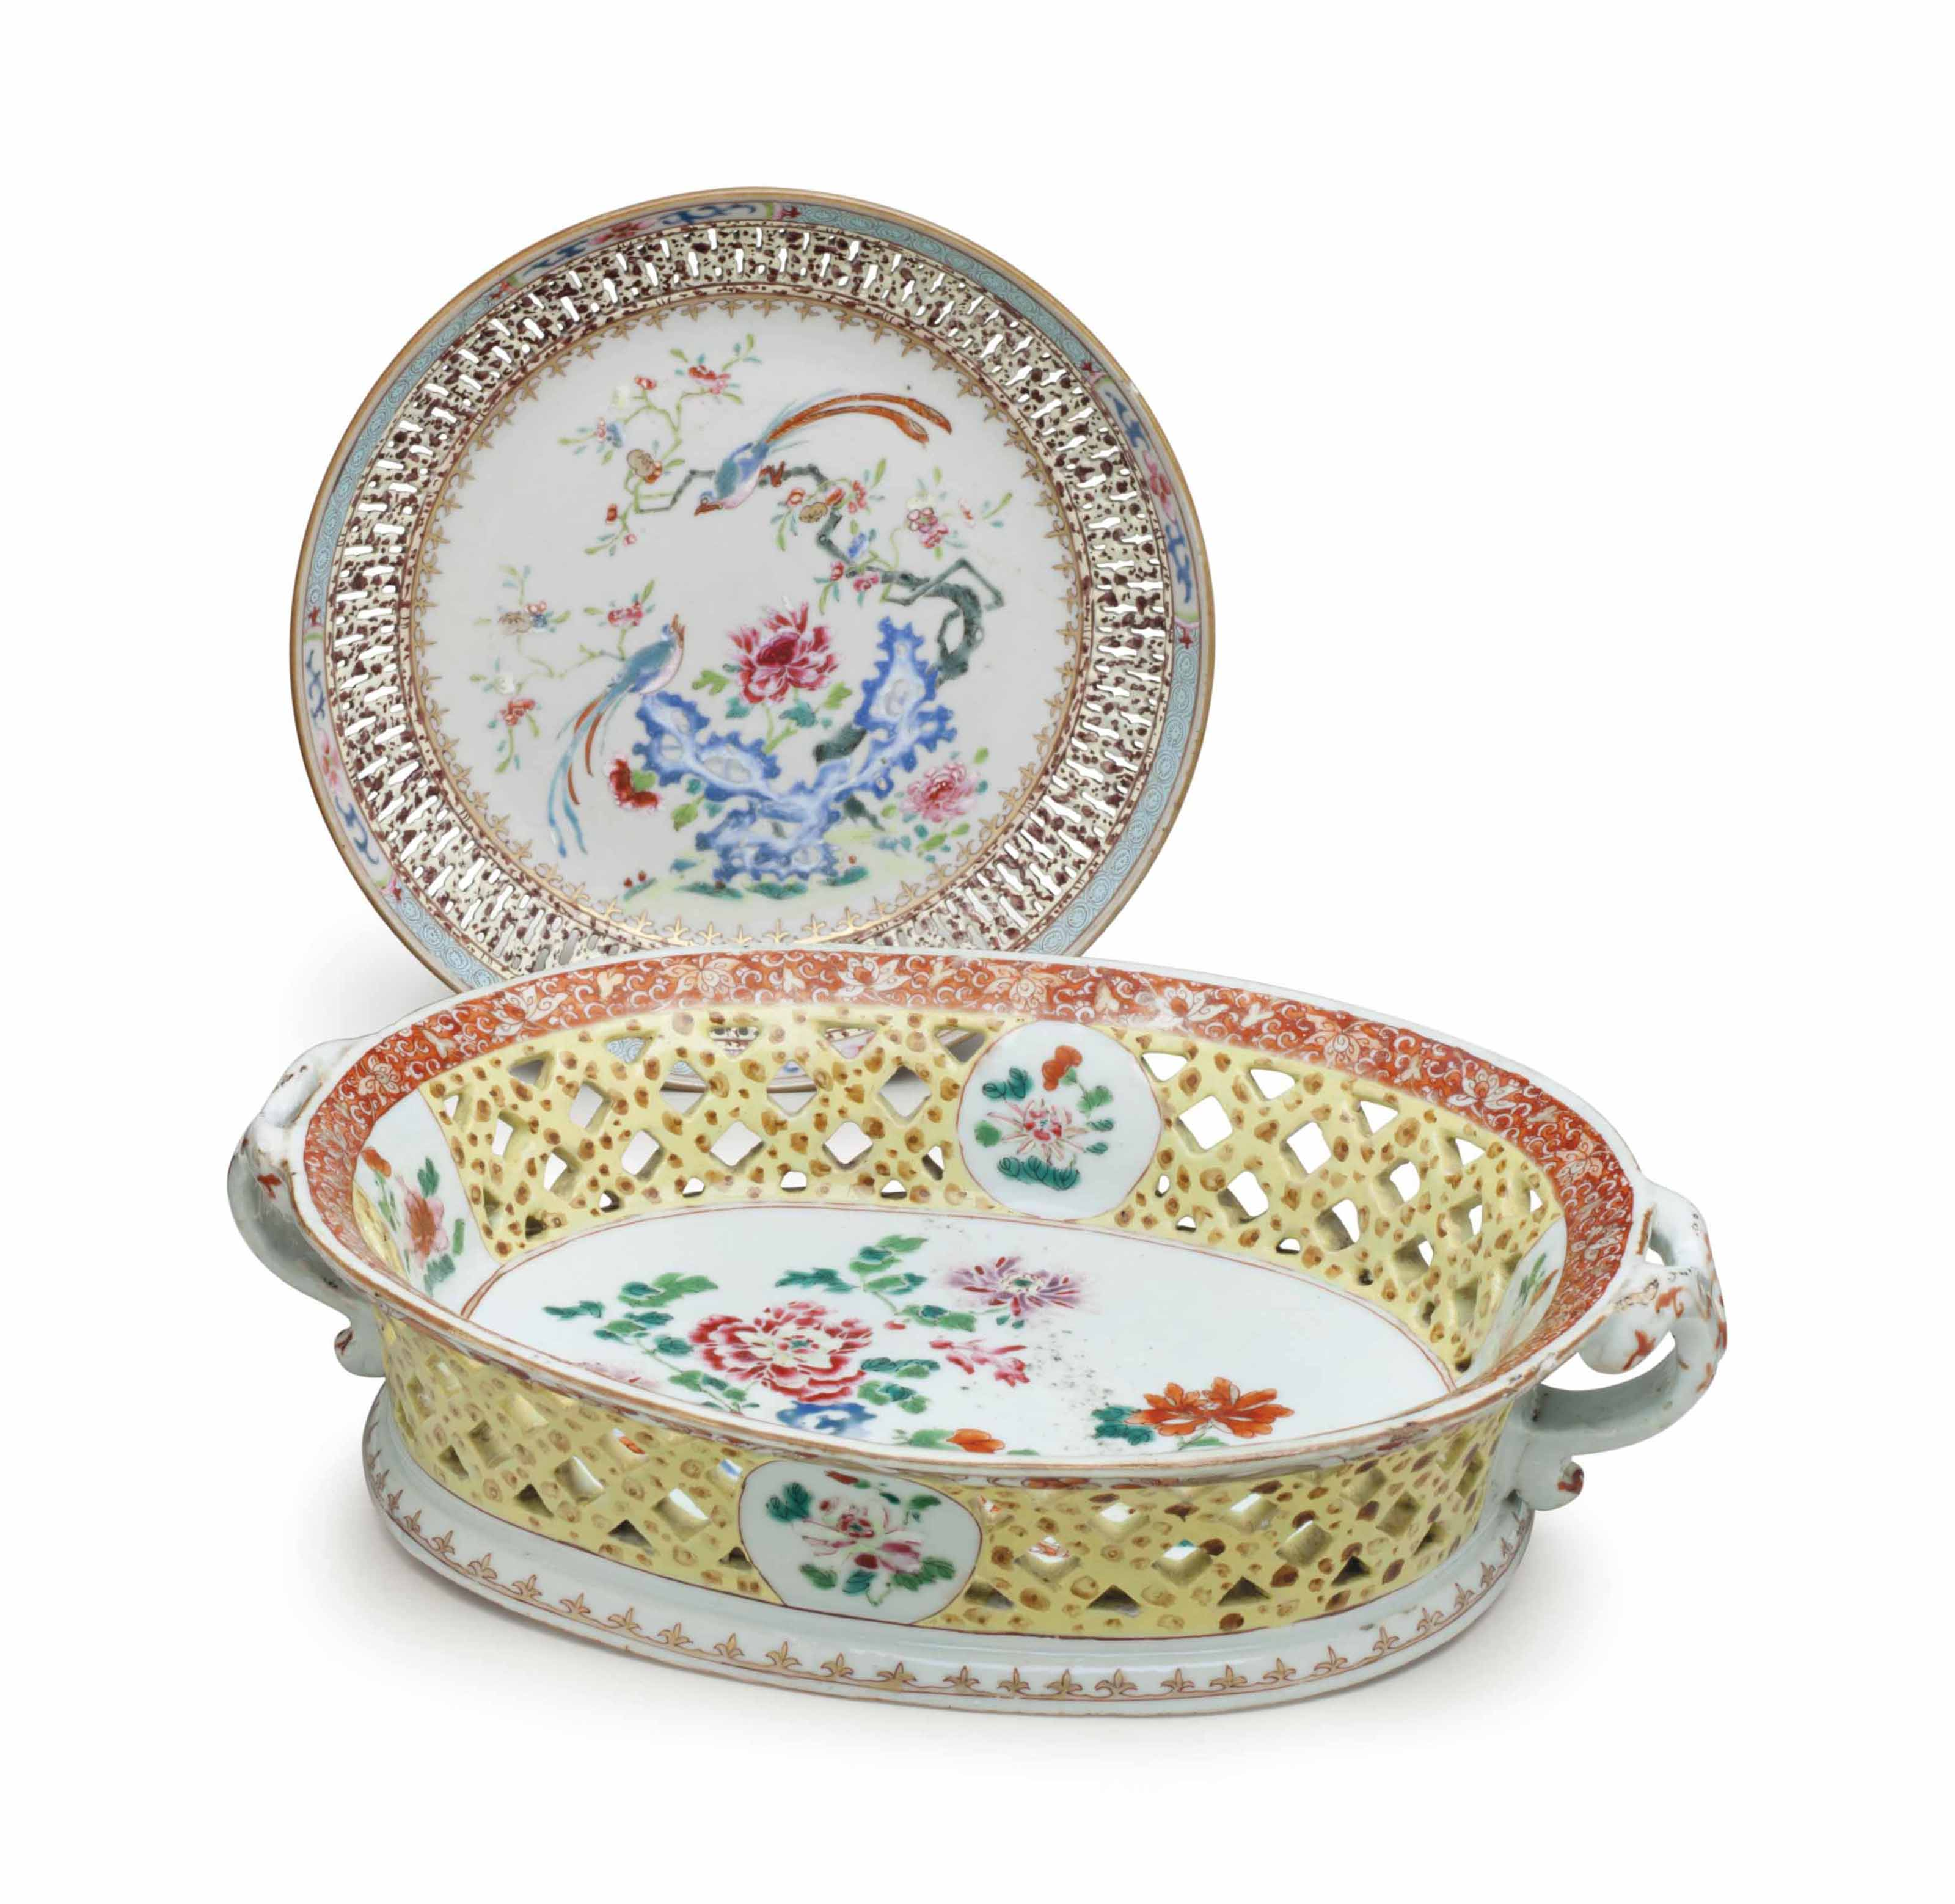 A FAMILLE ROSE TWO-HANDLED OVA